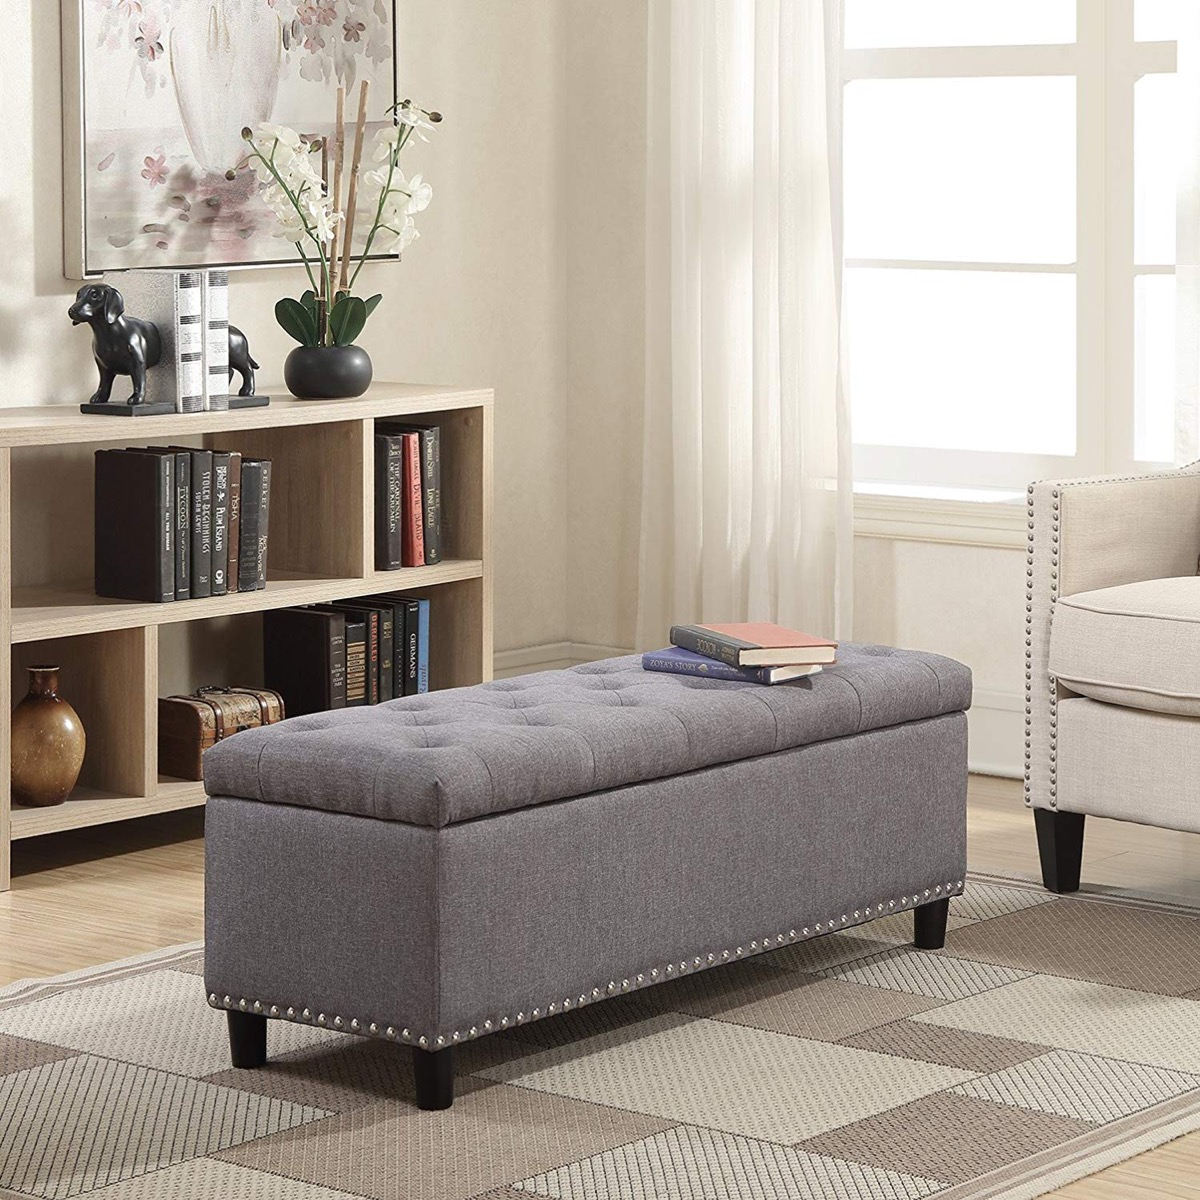 grey-ottoman-storage-bench-for-modern-classic-living-rooms-1